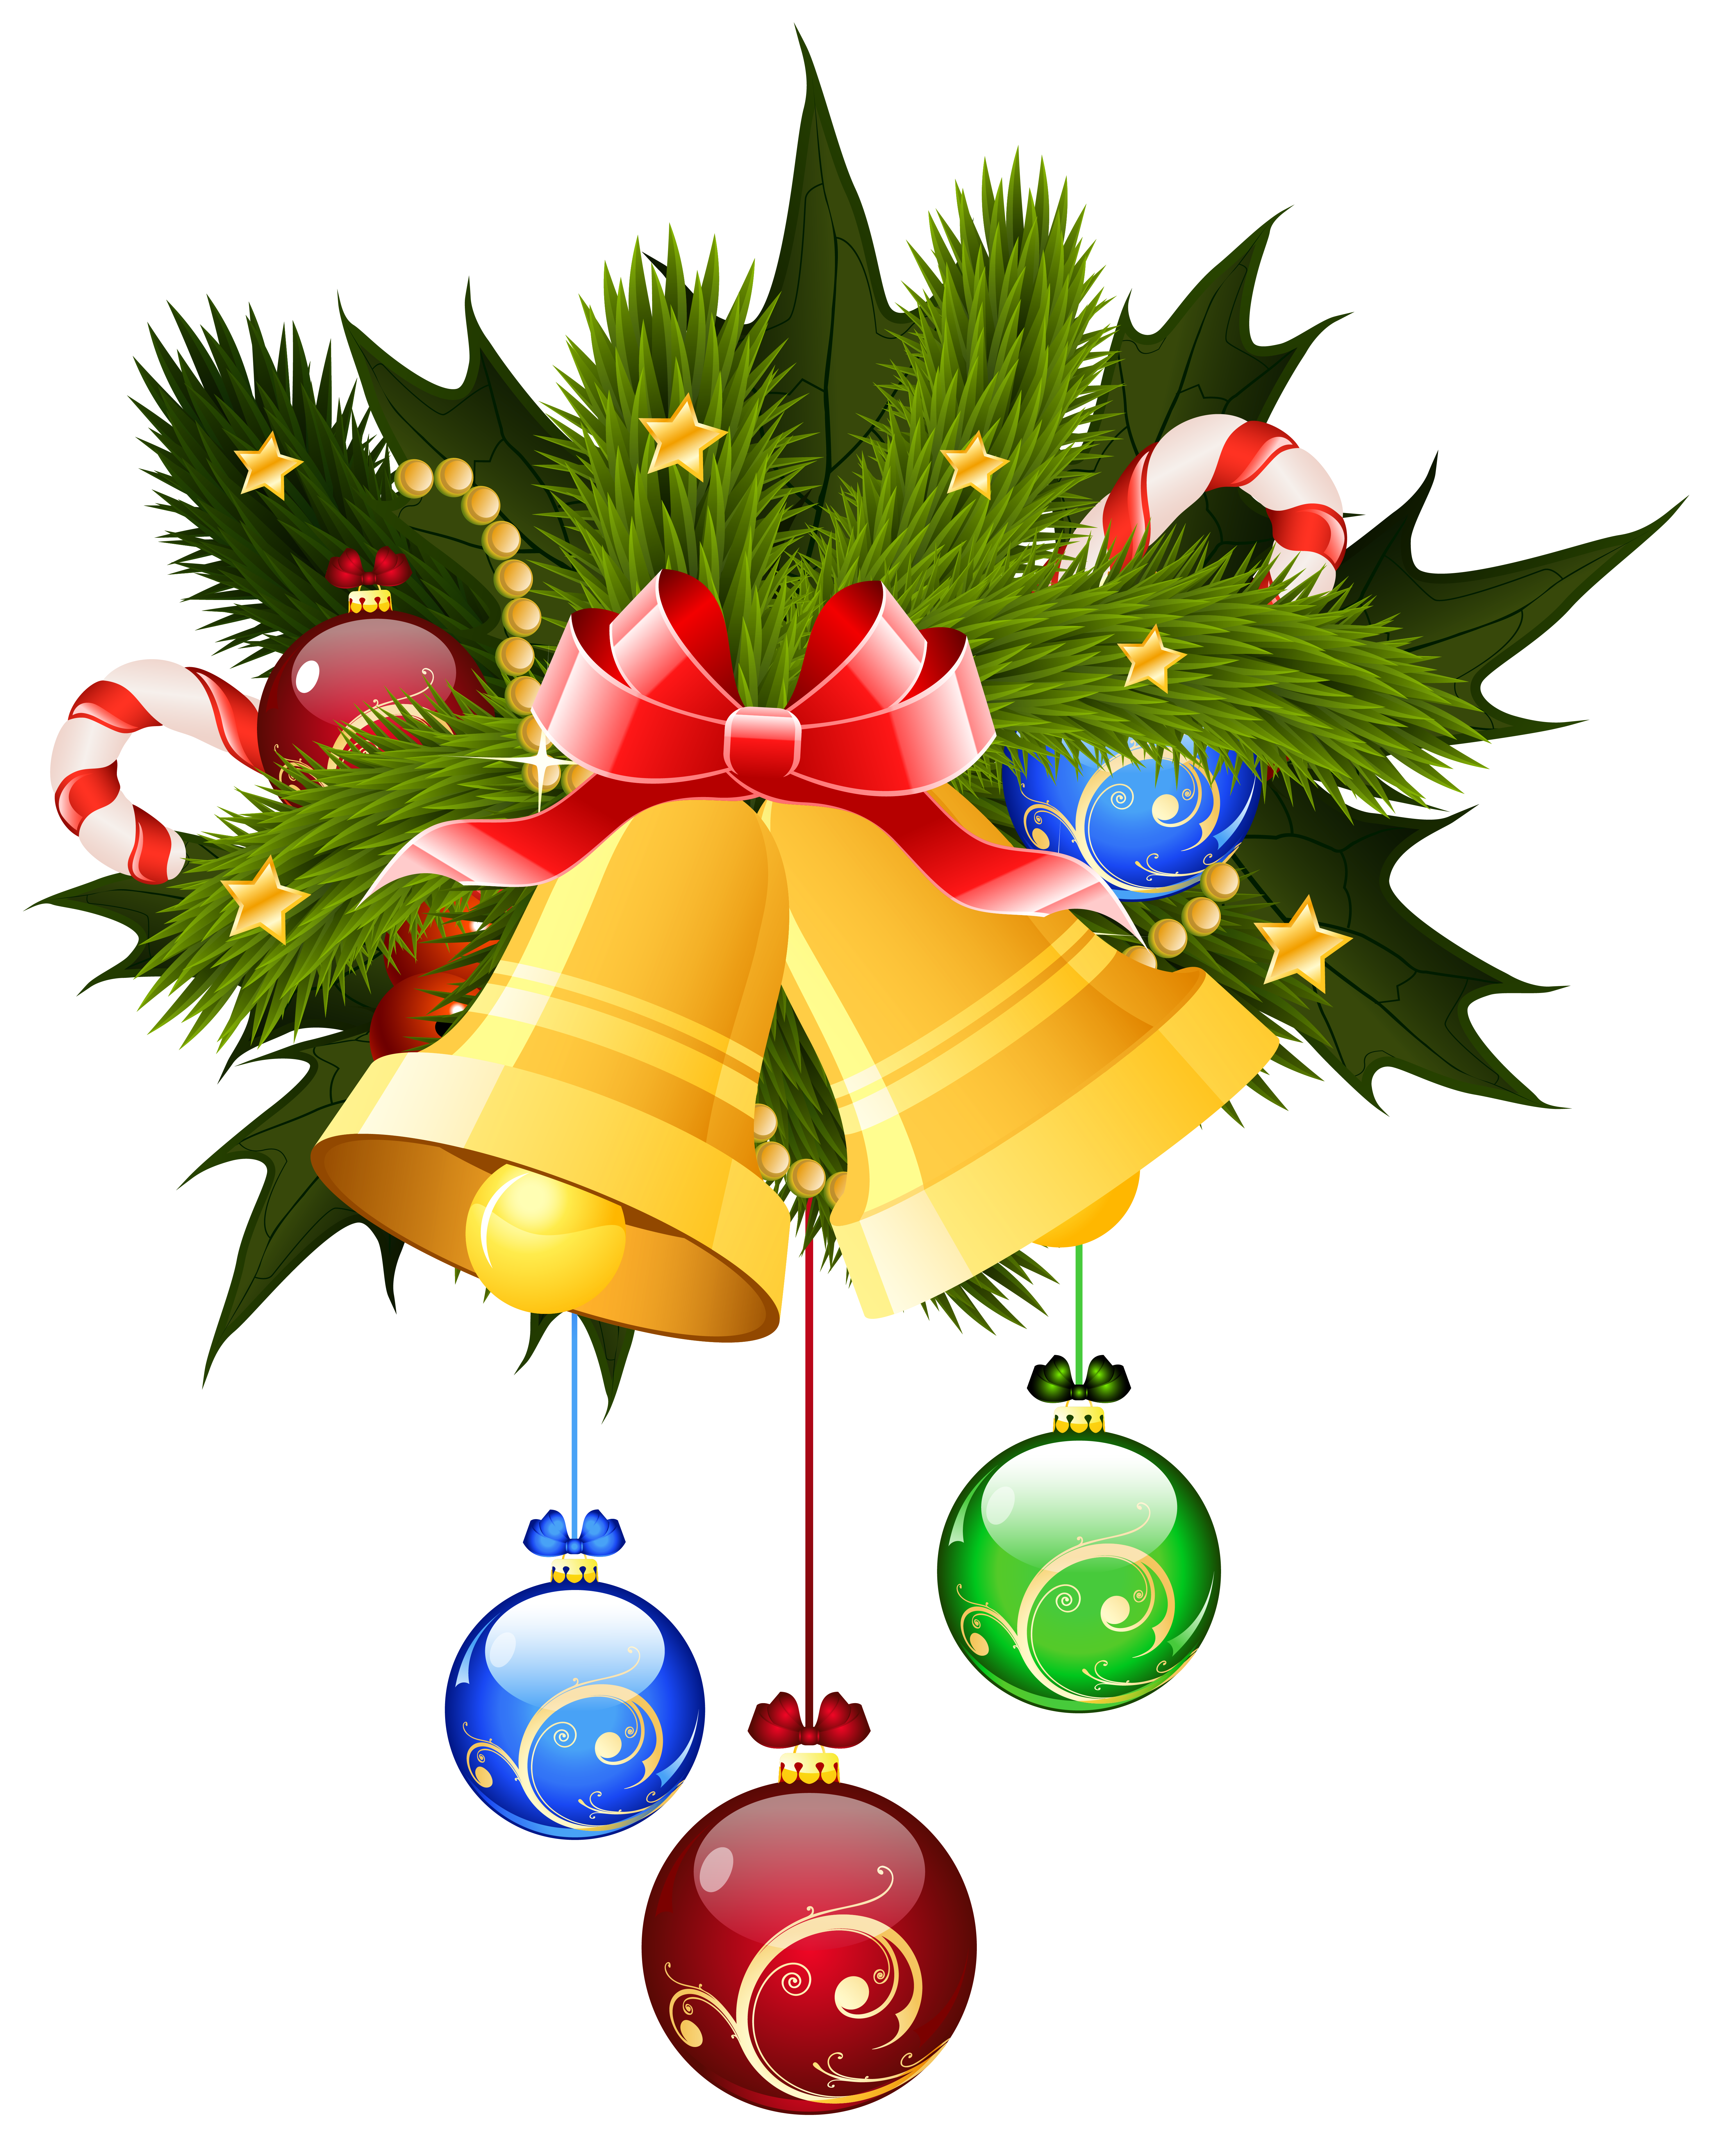 Christmas bells and ornaments. Ornament clipart bell